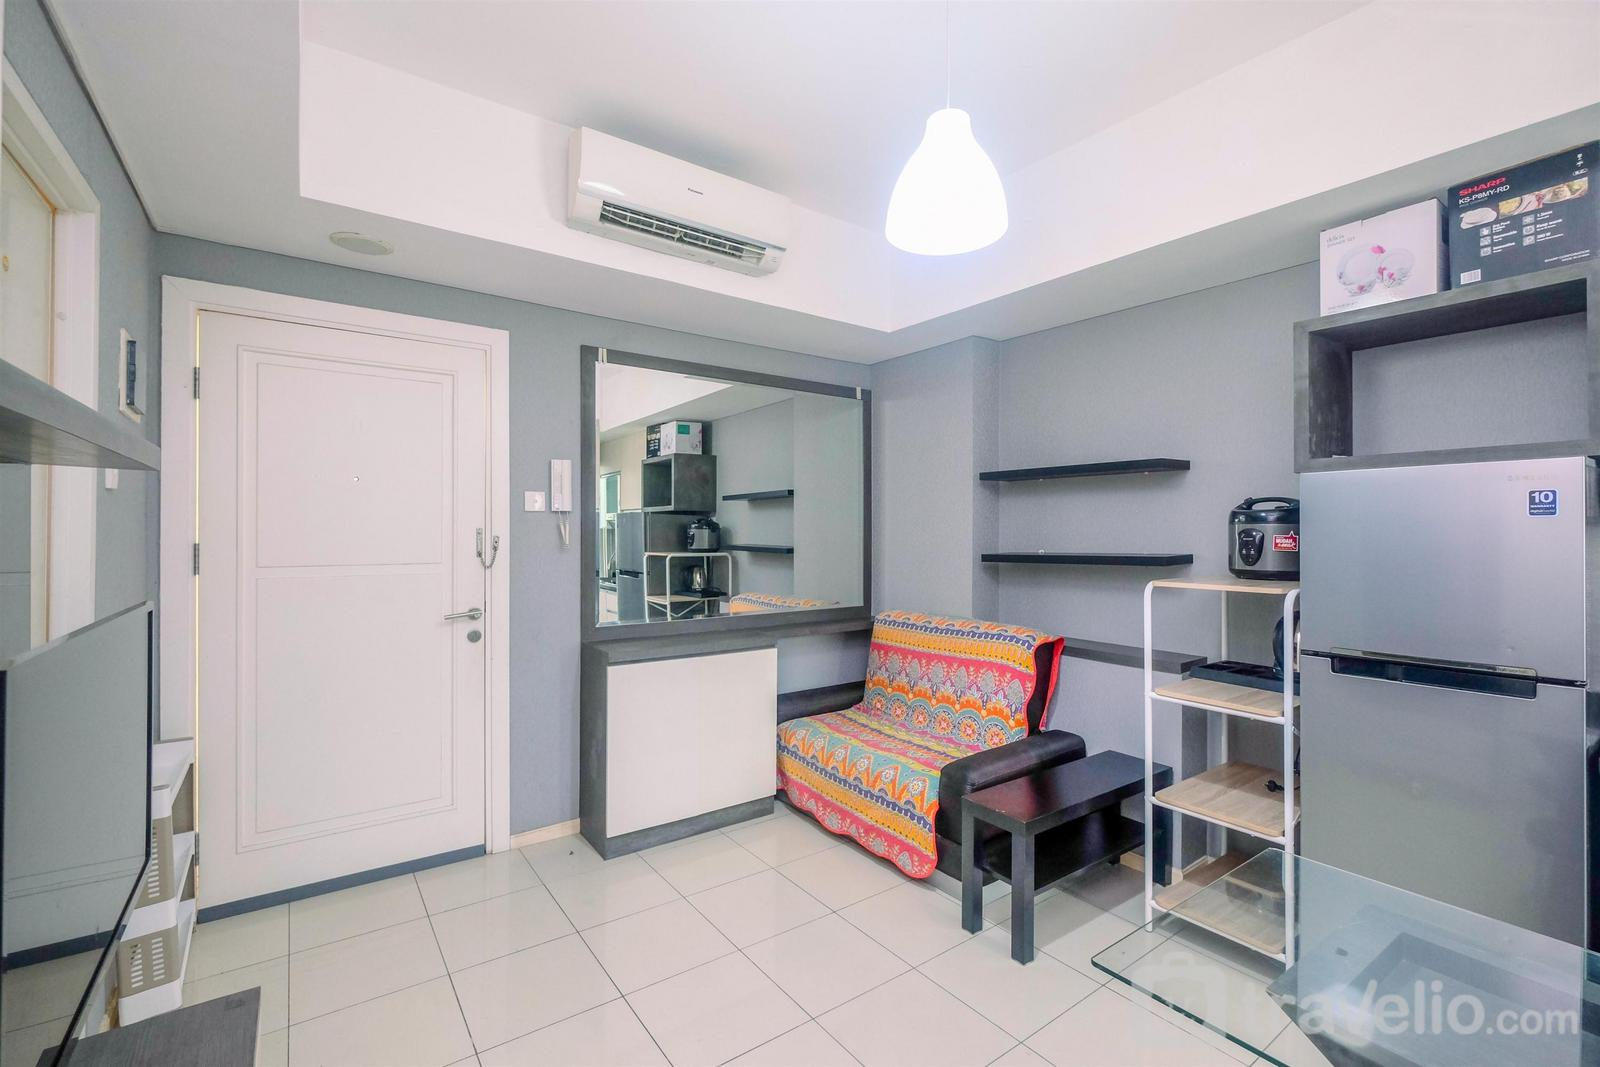 Greenlake Sunter - Cozy and Relax 2BR Apartment at Greenlake Sunter By Travelio